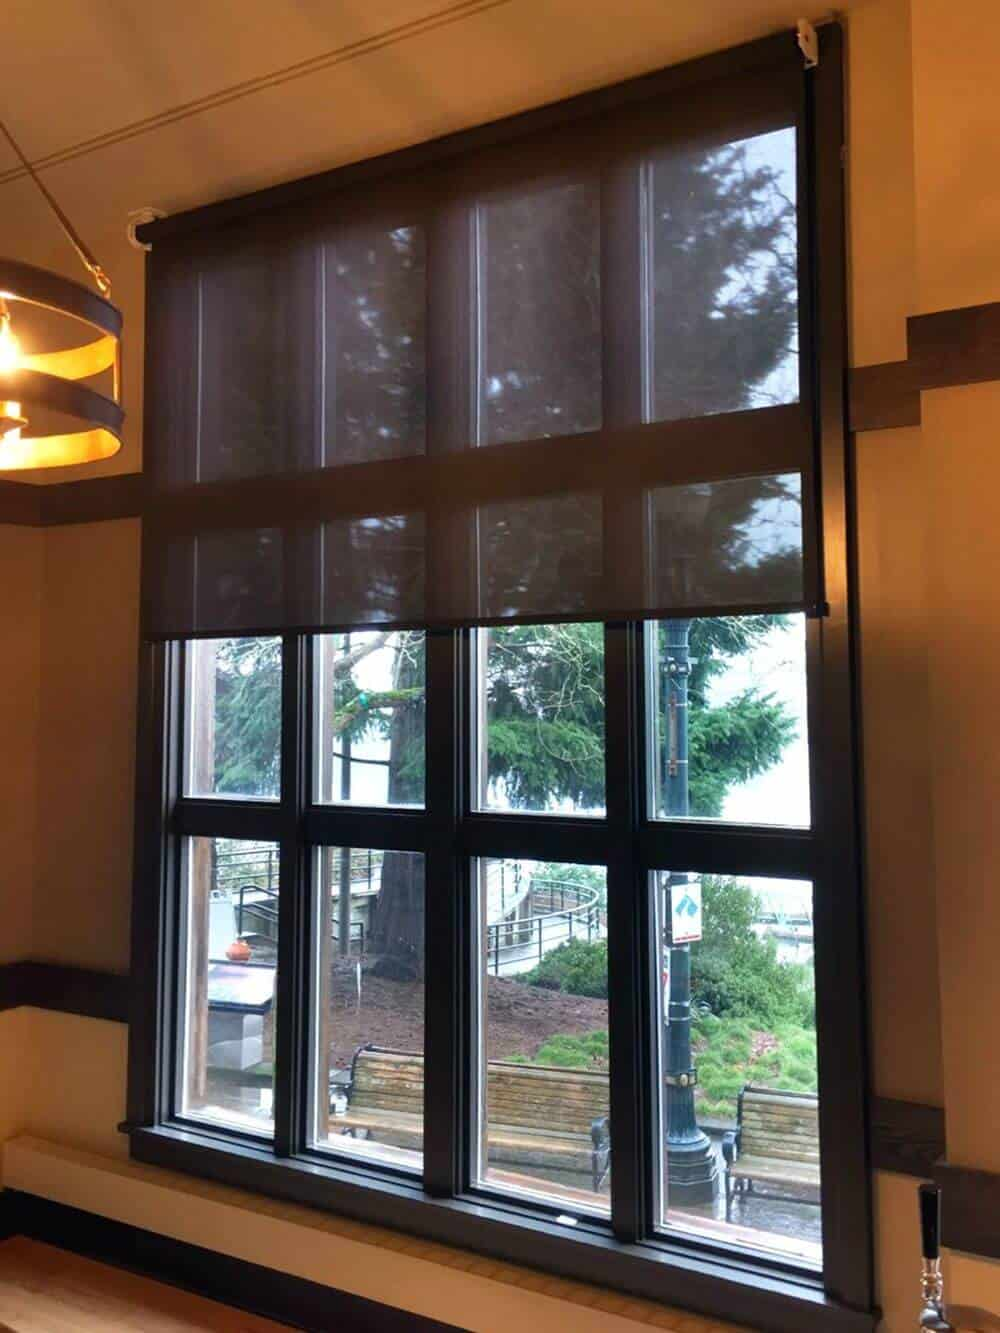 A focused look at this house's windows with gorgeous window frame and has a solar window shade.